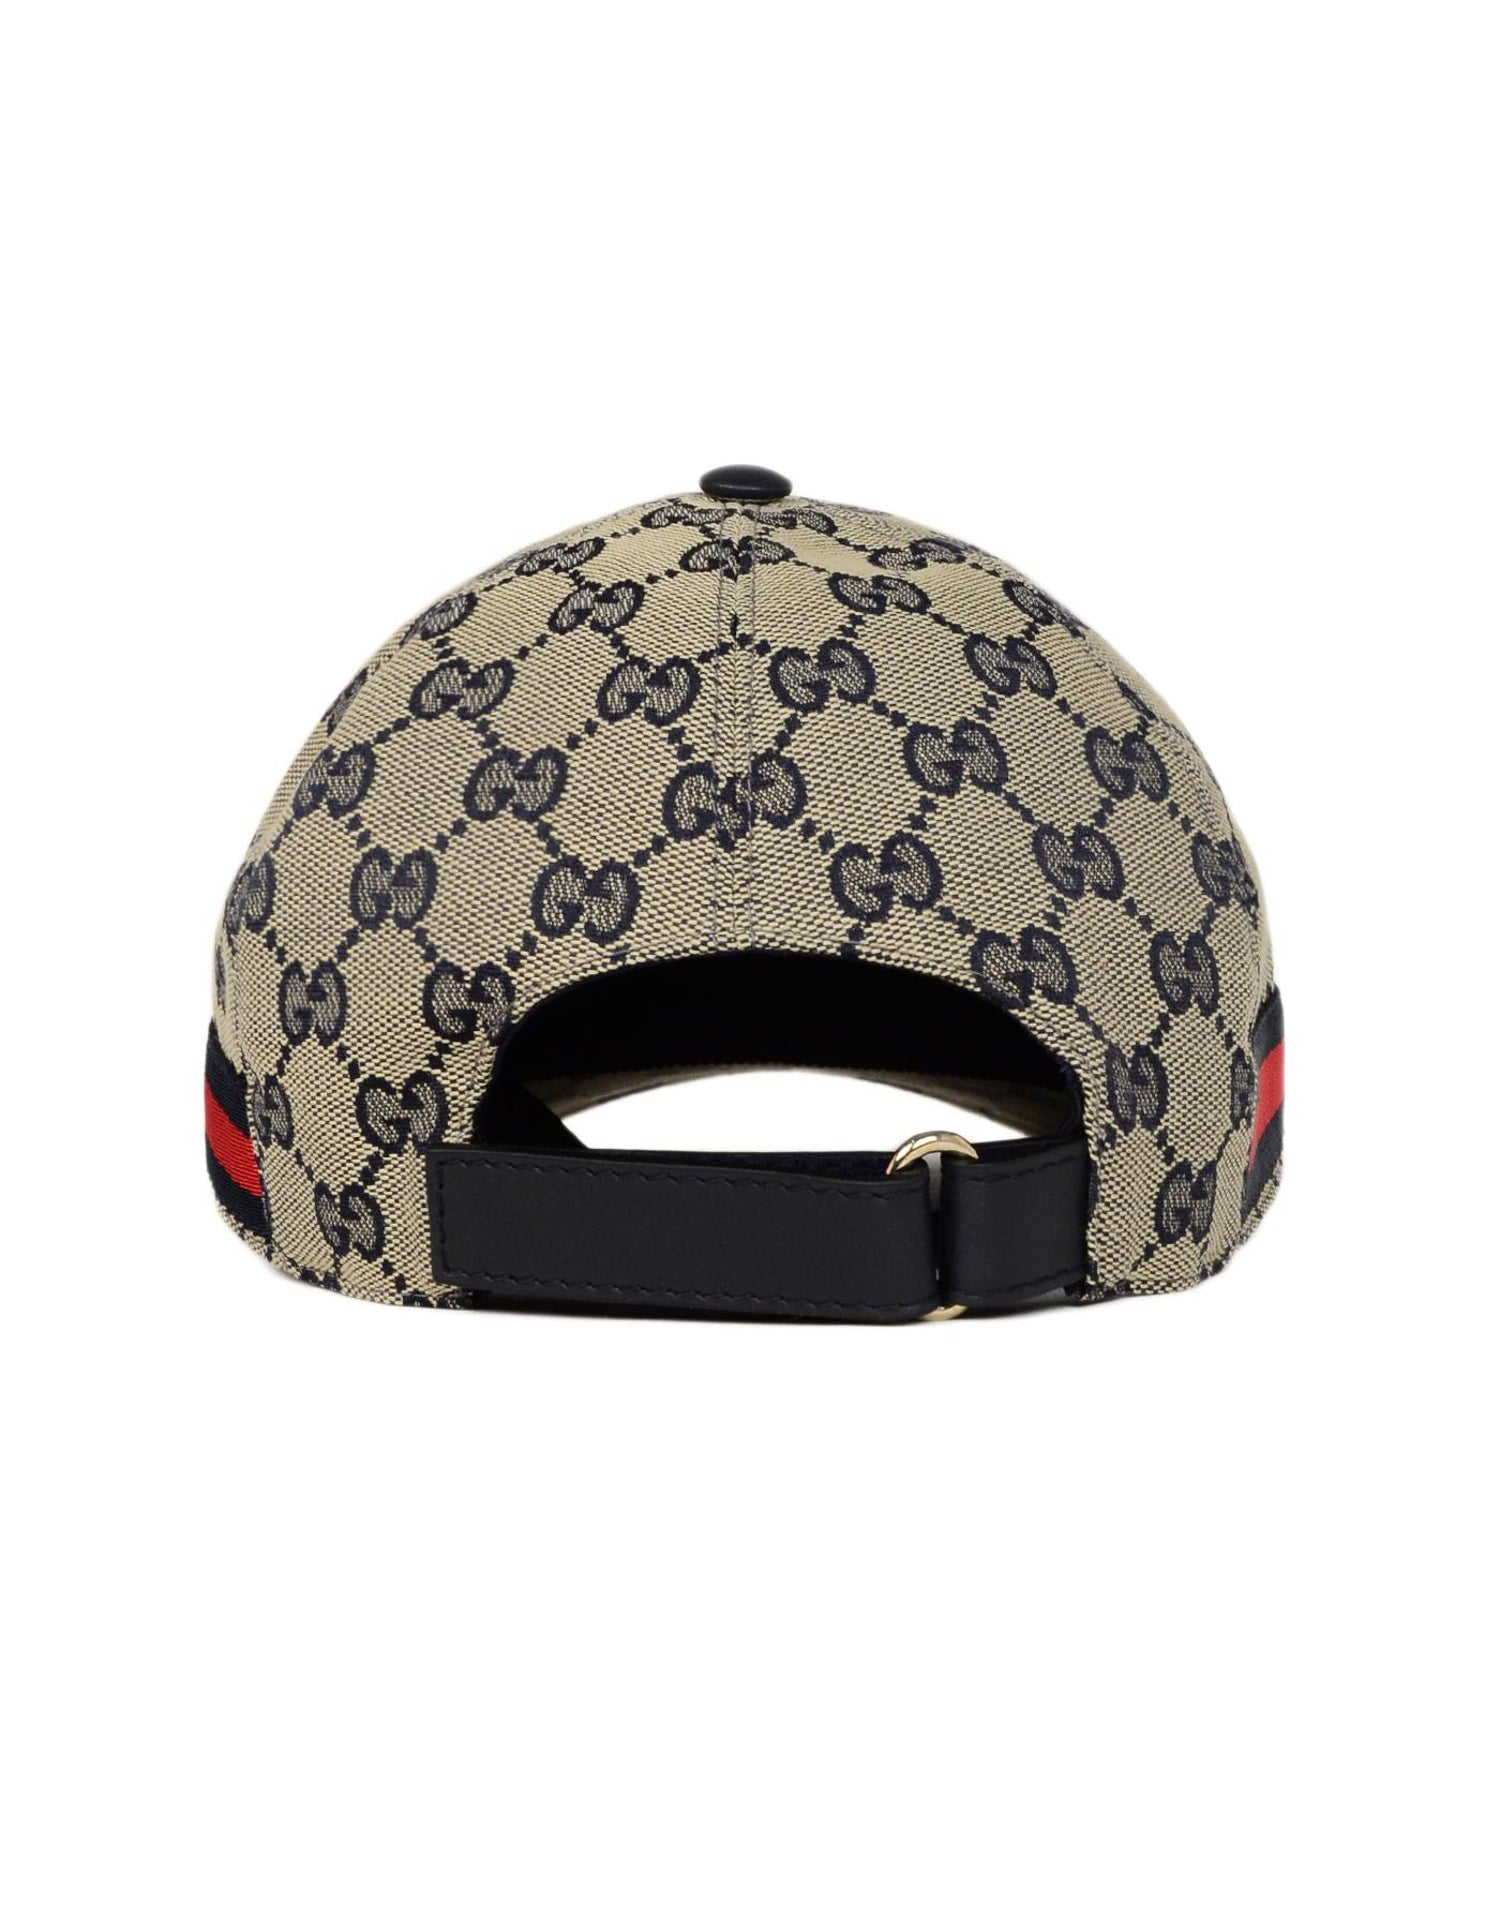 Gucci NWT Navy Monogram Original GG Canvas Baseball Cap Hat W  Web Unisex  Sz M For Sale at 1stdibs 4c39ee7f8586